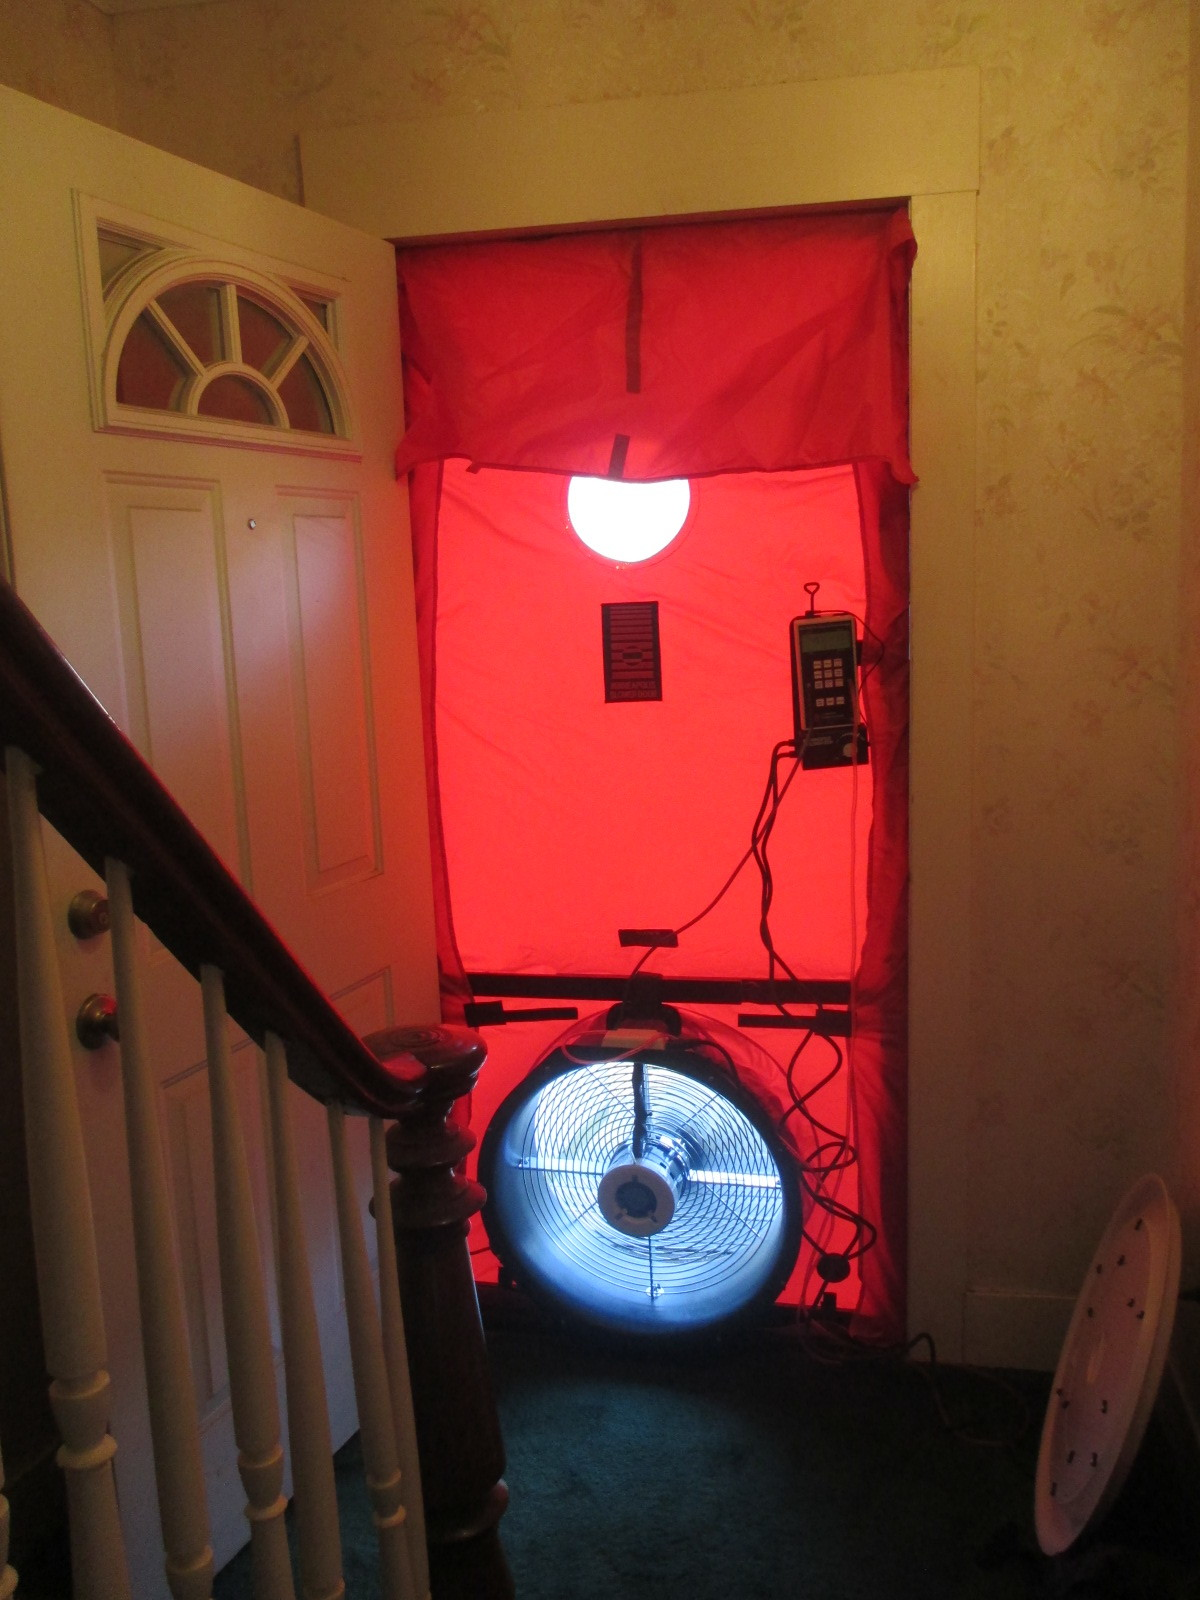 A blower door test measures the rate of air infiltration in the house. It is advantageous to do a blower door test before any work starts. A final test will verify the reduction in air leakage, and the performance based rebate will account for the improvement.